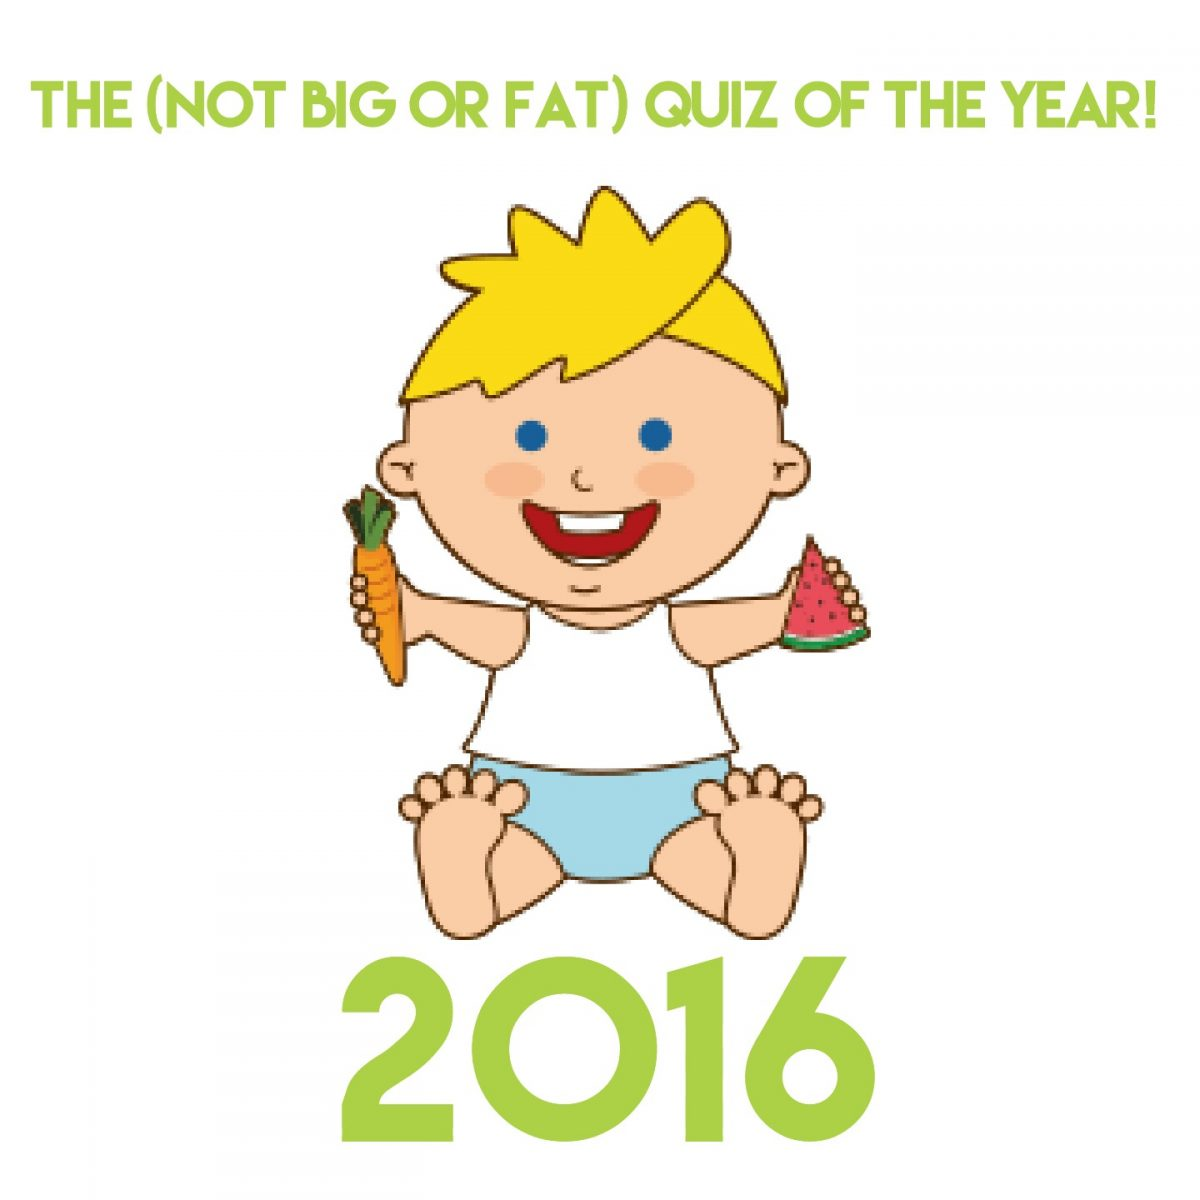 The (not big or fat) quiz of the year